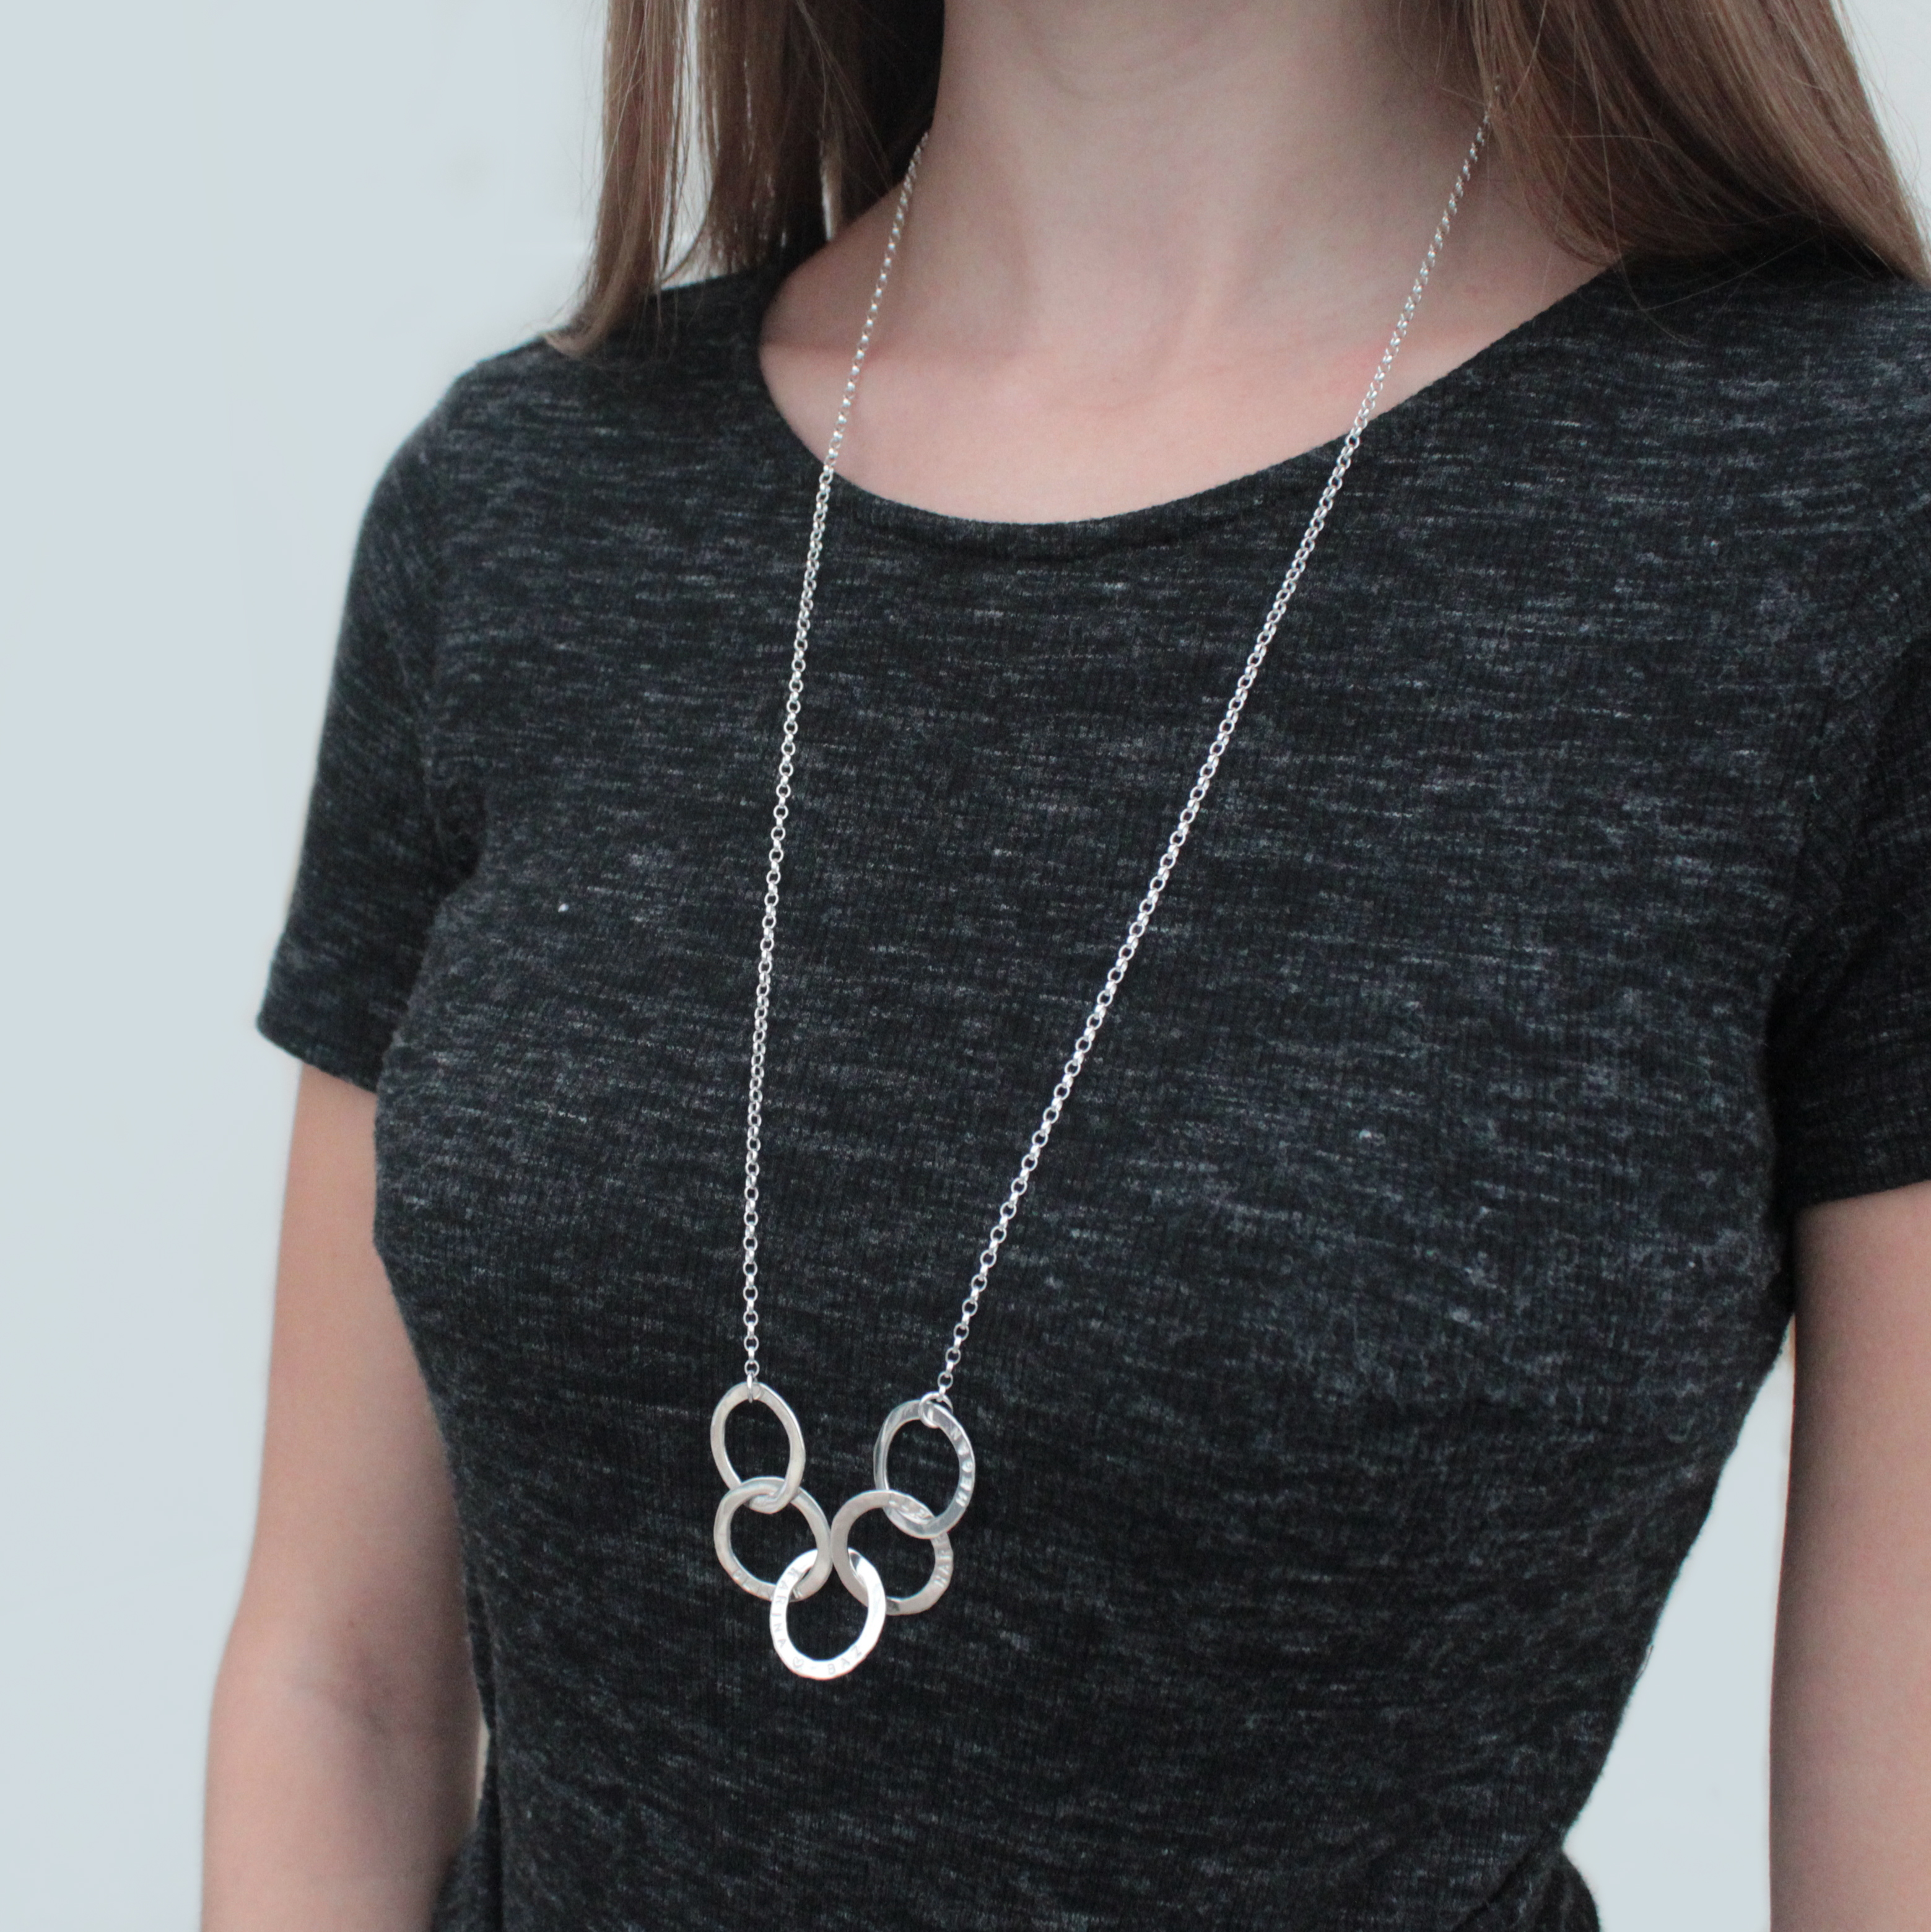 Five Disc Necklace